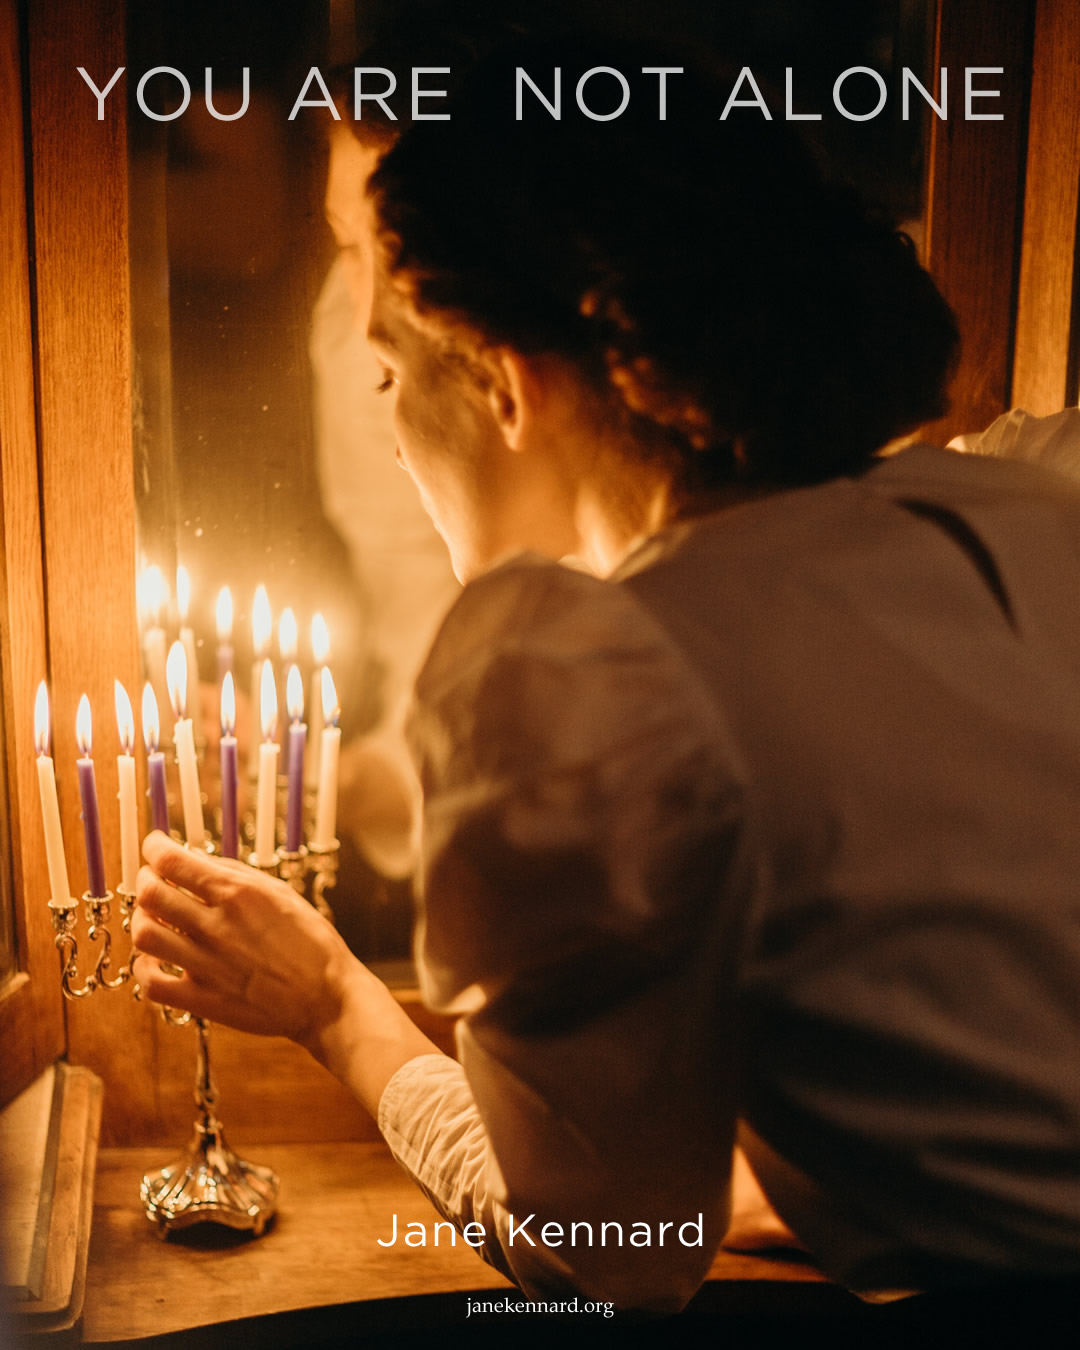 The-Holidays-with-Jane-Kennard-Hanukkah-2020-photo-pexels-cottonbro